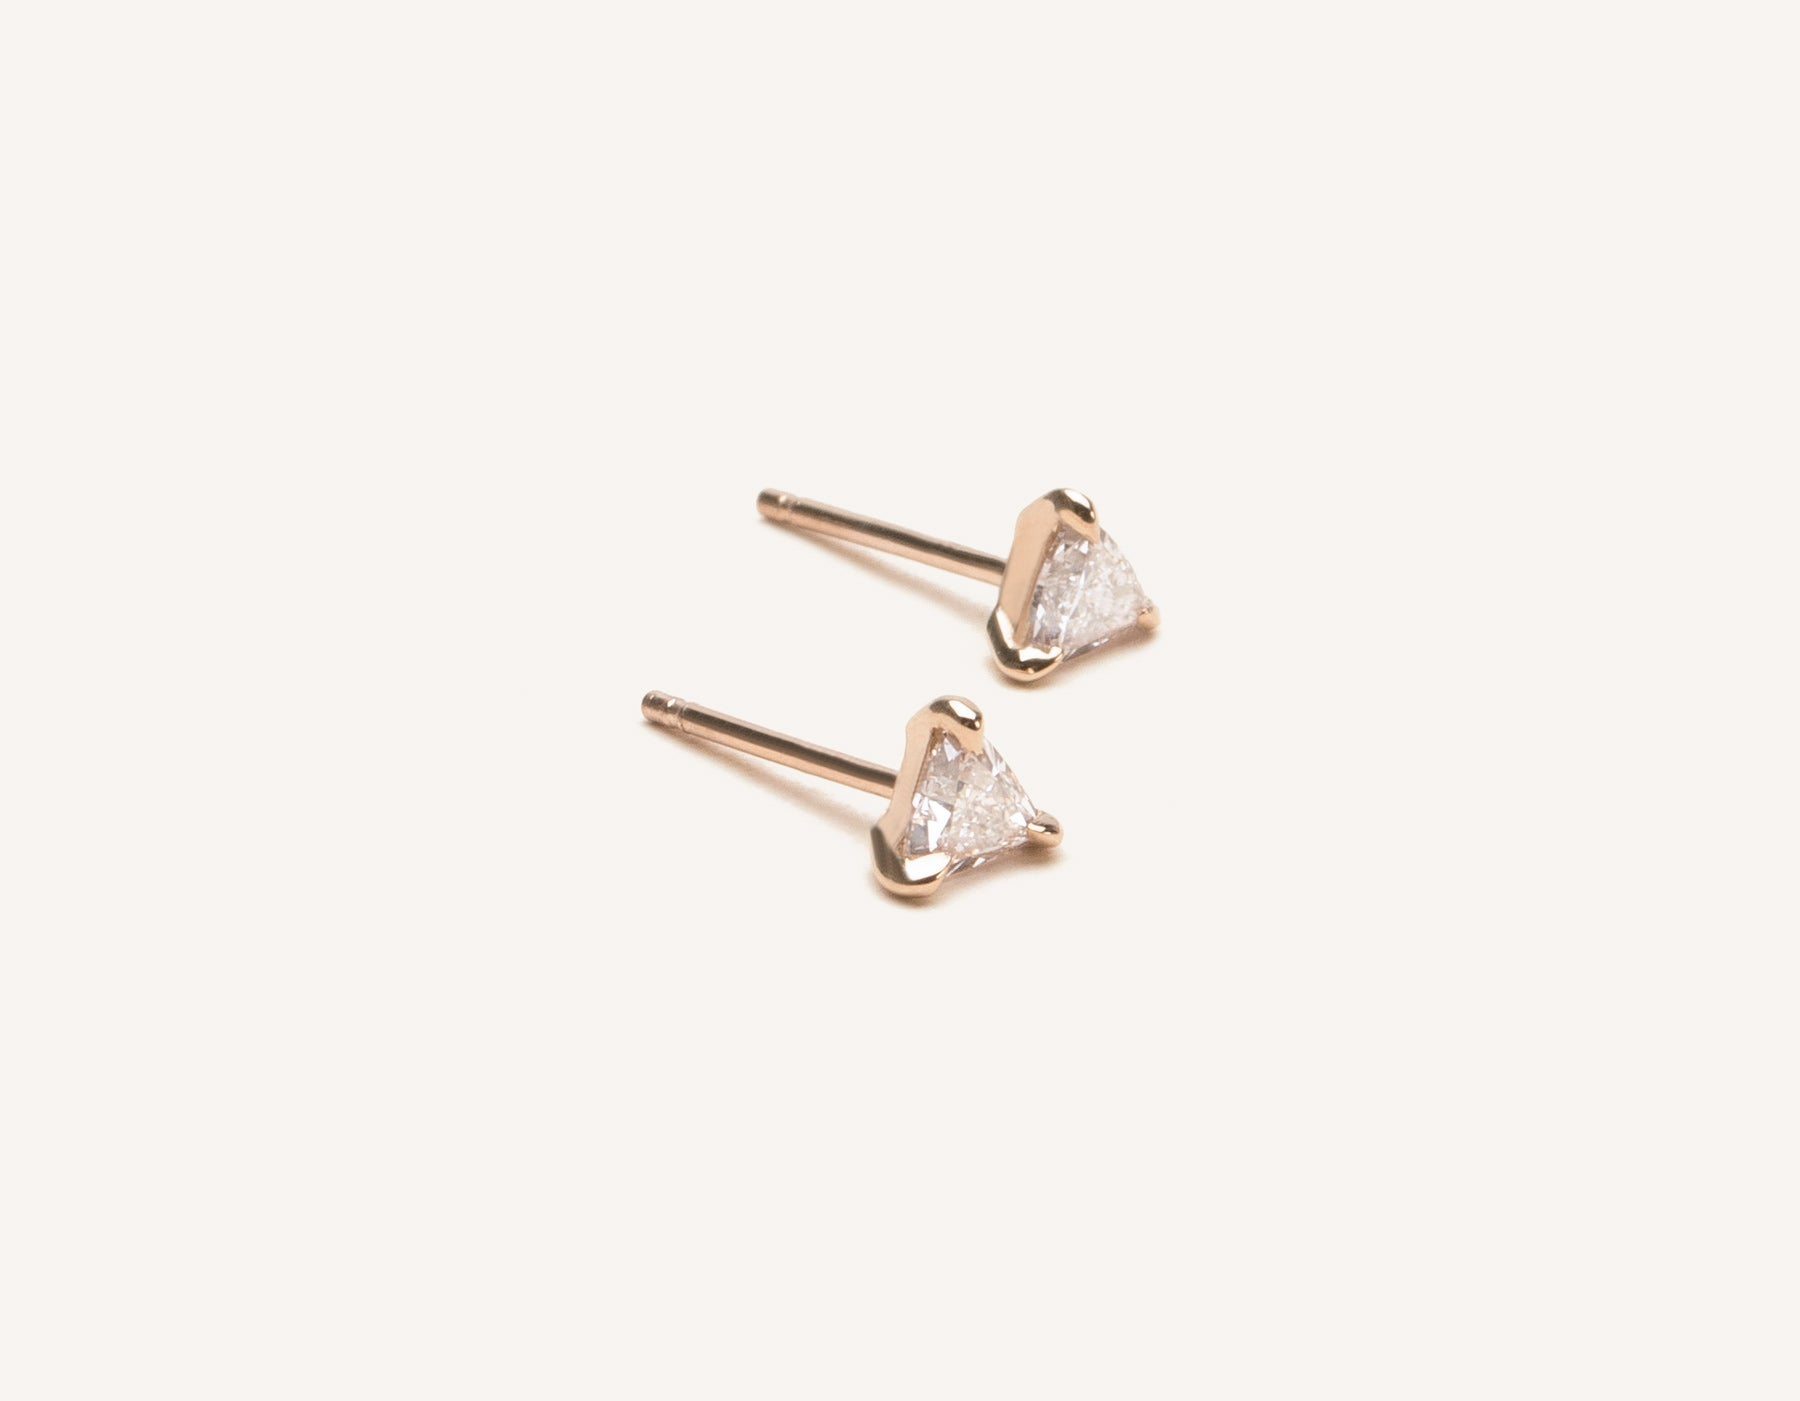 Elegant minimalist 14k solid gold triangle Trillion Diamond Earring studs by Vrai and Oro, 14K Rose Gold